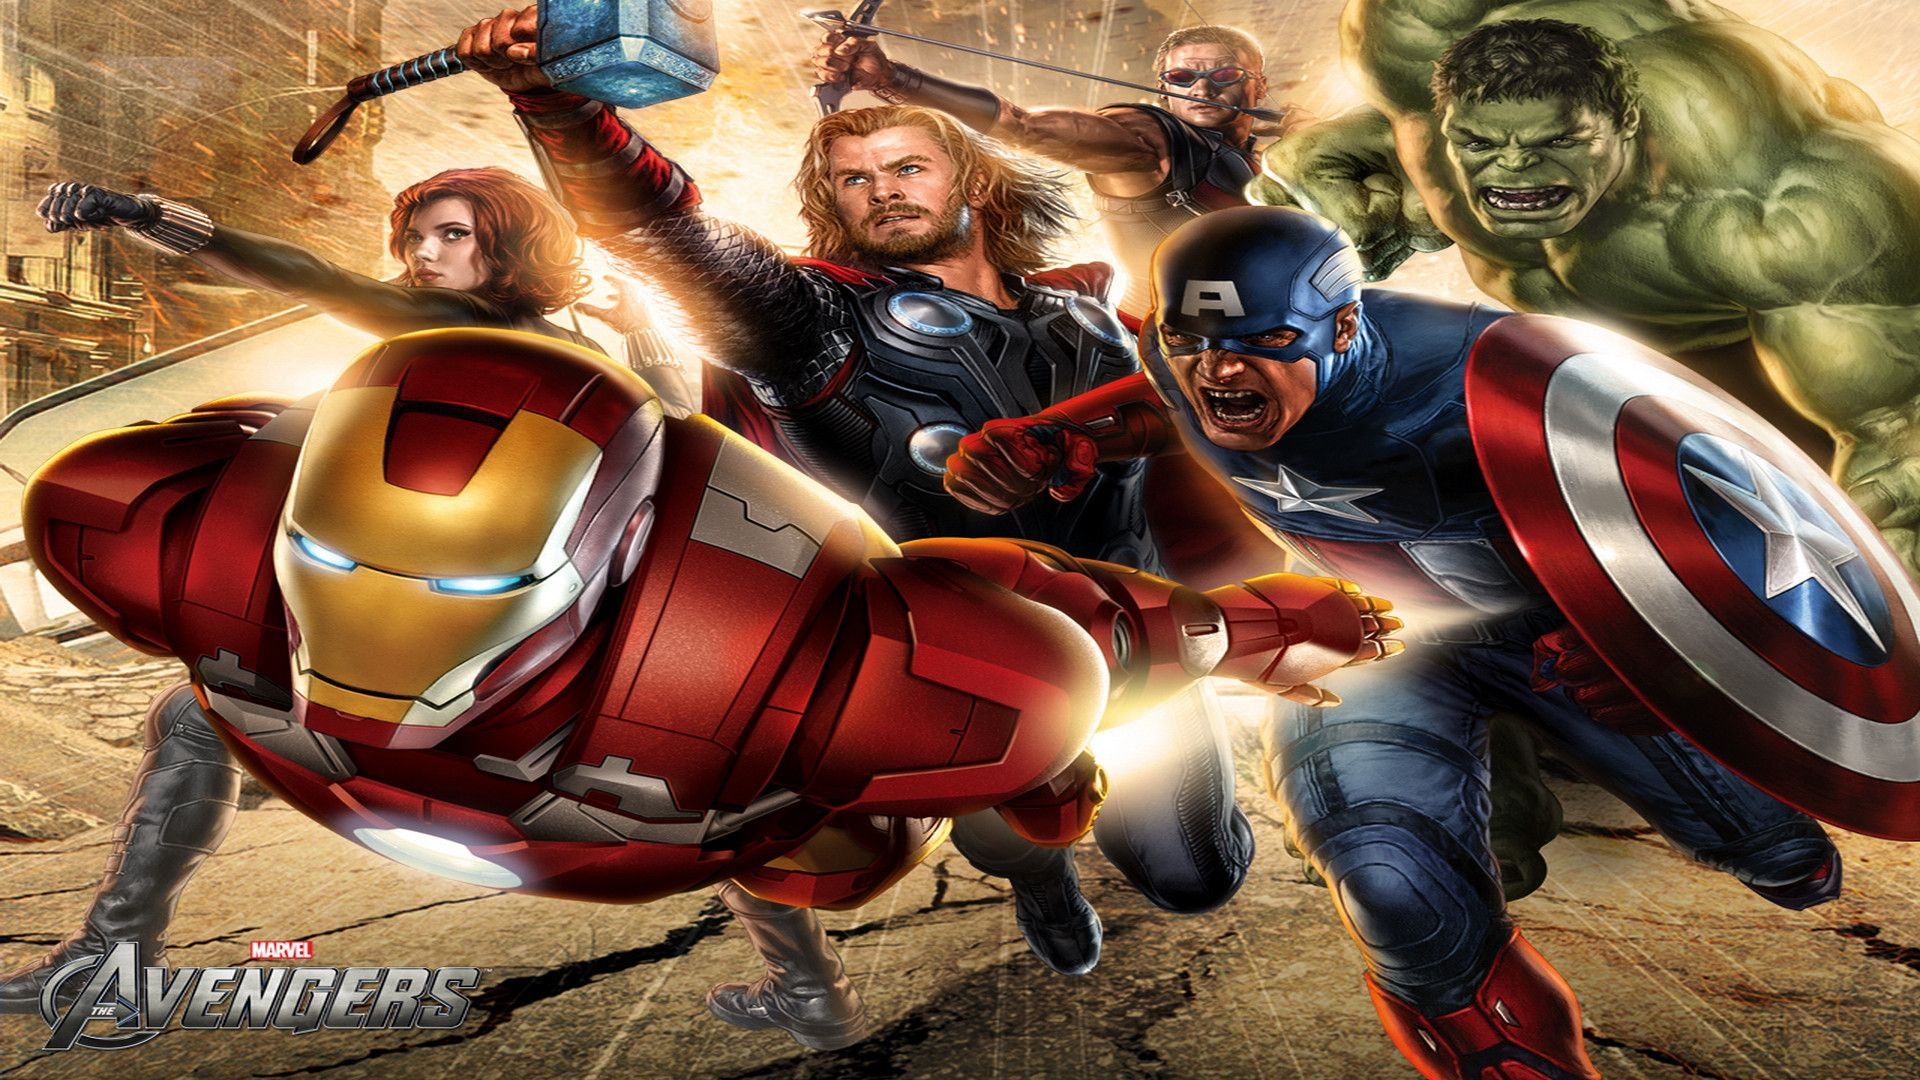 20 Avengers Wallpapers Backgrounds Images Pictures